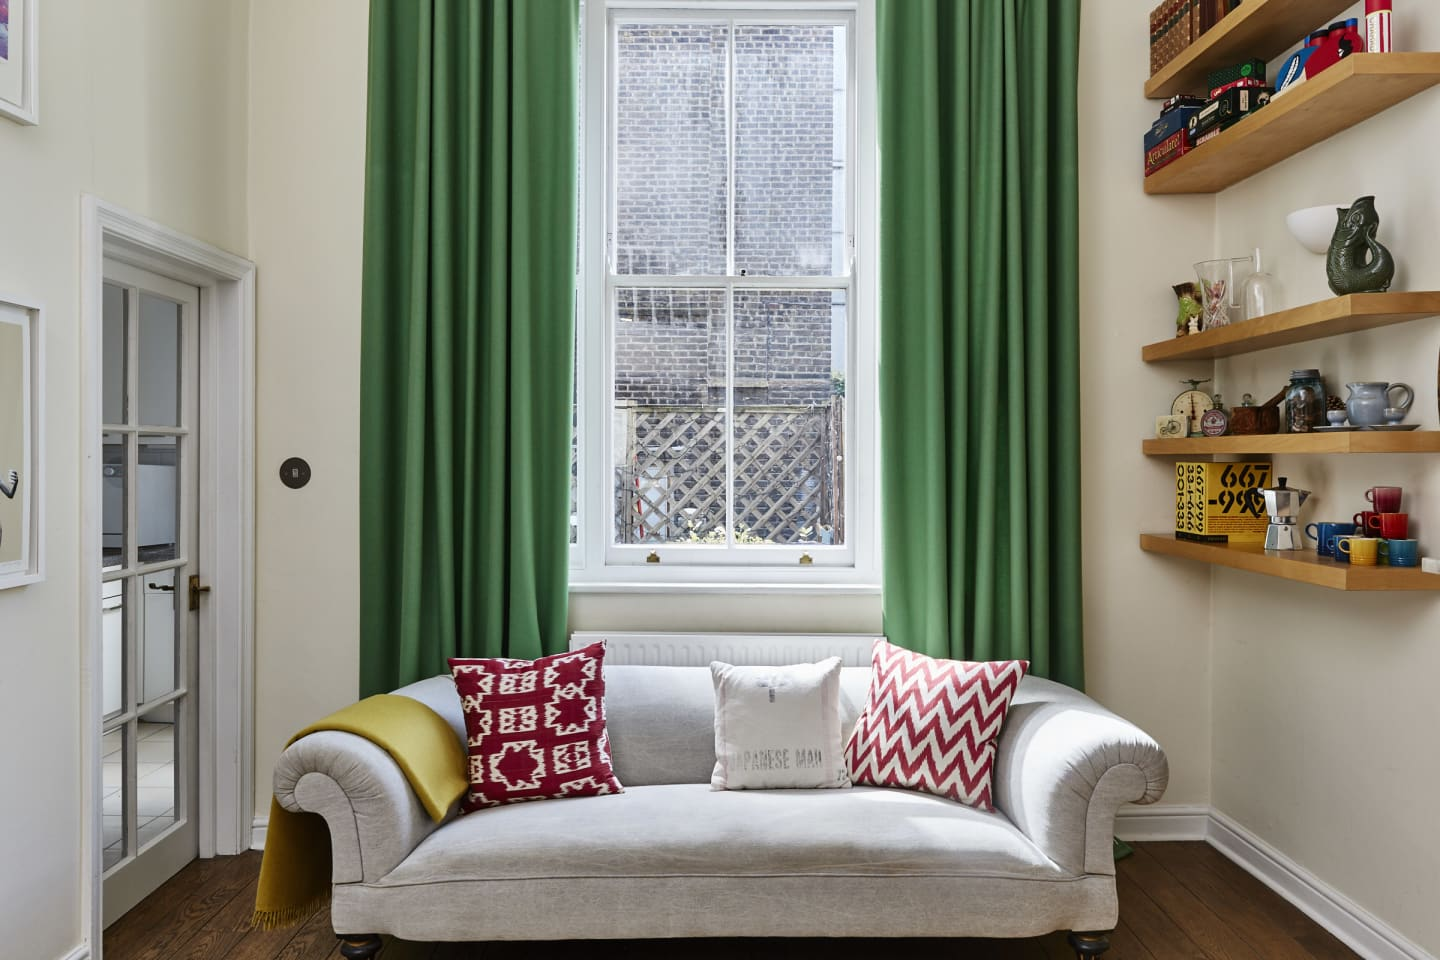 Living room with grey sofa and green woollen curtains